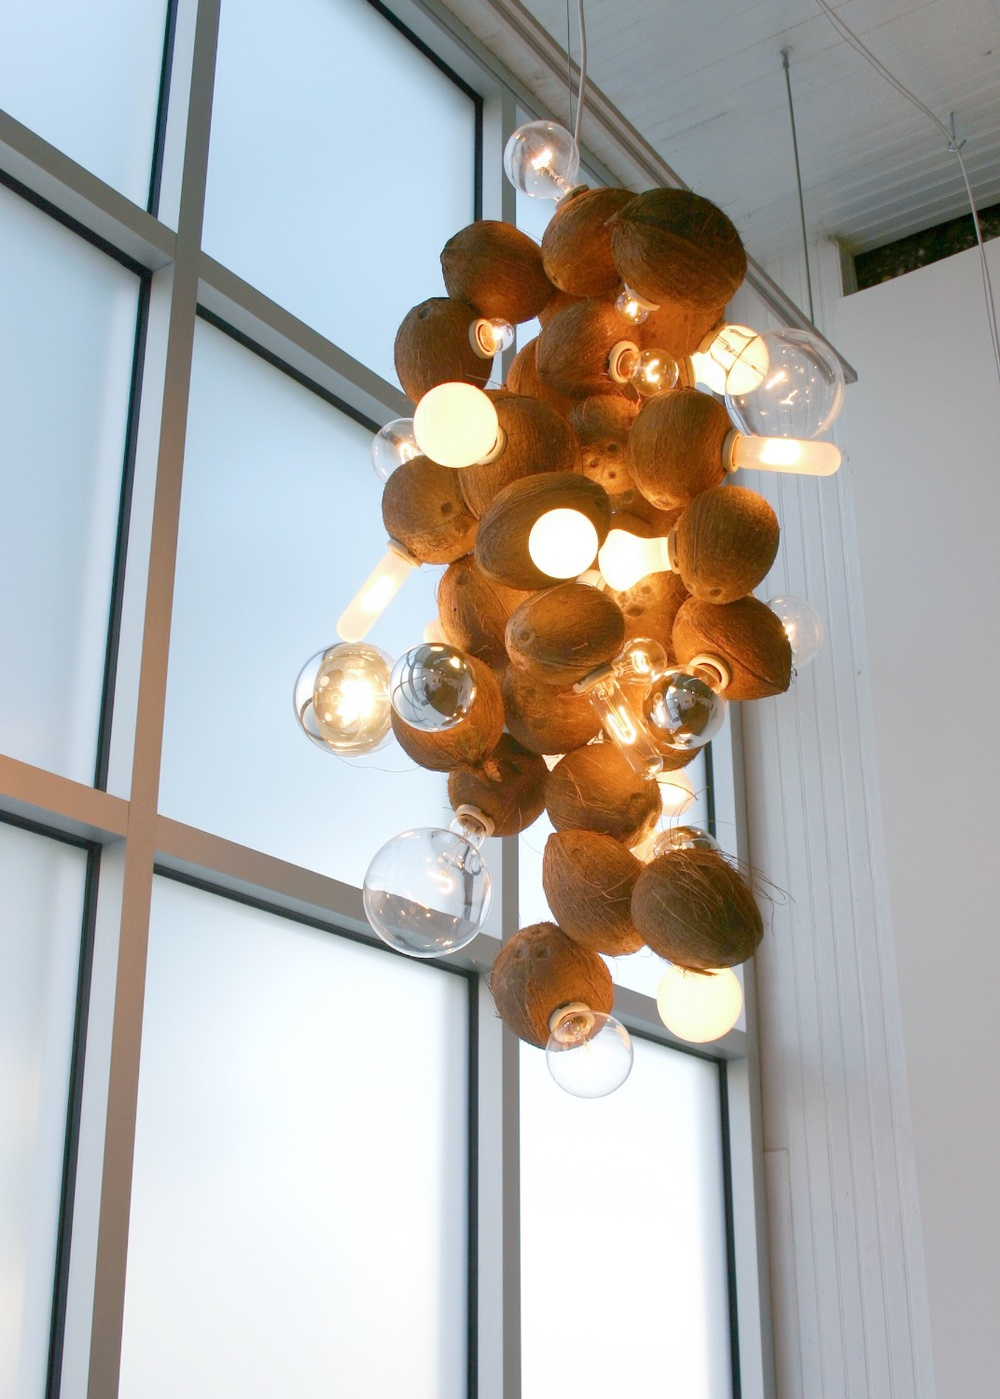 Guyton/Walker  Coconut Chandelier  2006 Coconuts, light fixtures, light bulbs 44h x 30w in